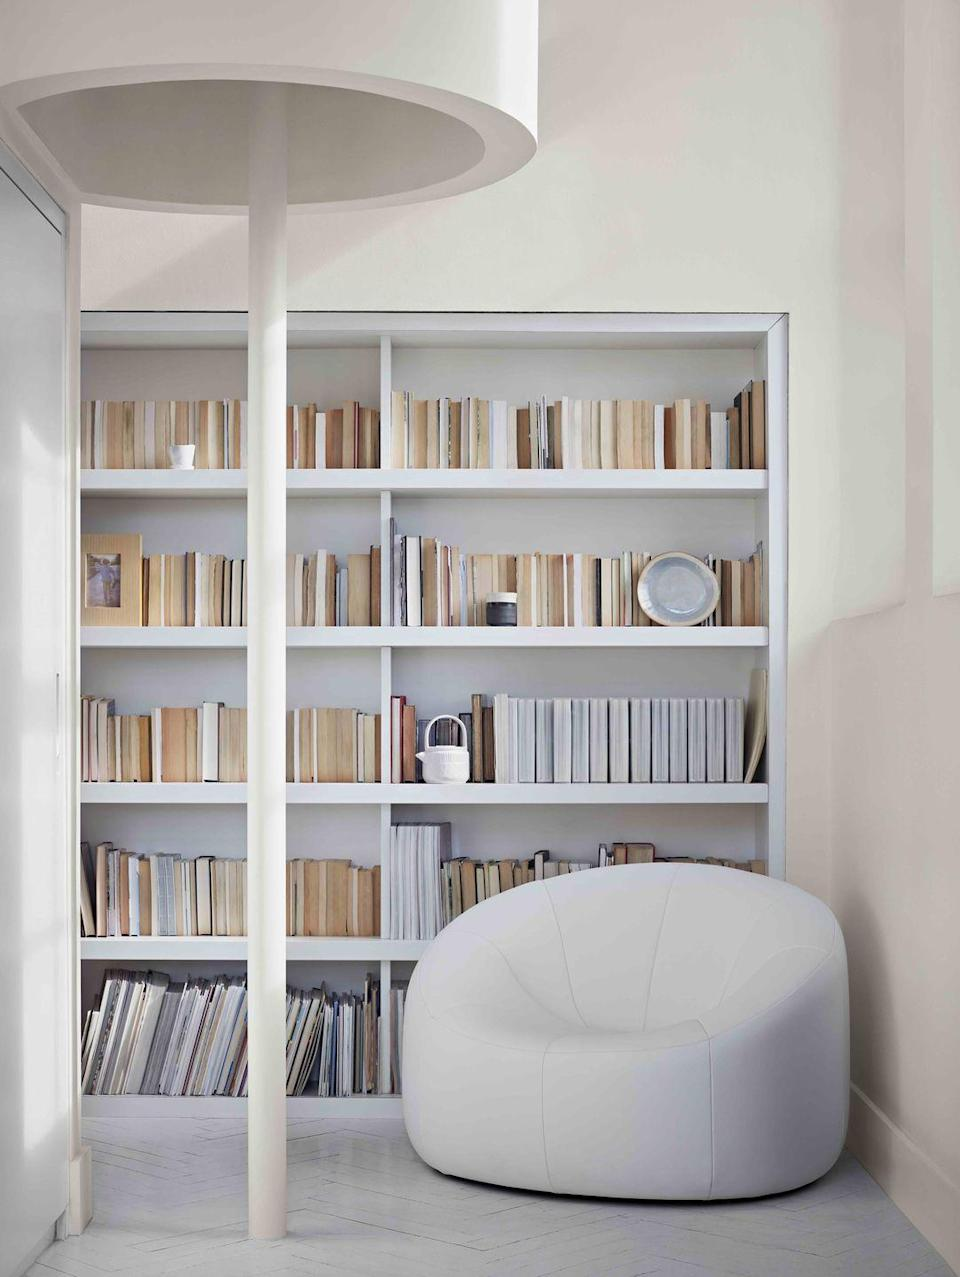 "<p>As we all know, picking the right shade of white paint is a fine art. For a library space try a white with a beige undertone, such as '<a href=""https://www.crownpaints.co.uk/products/elle-decoration-by-crown/powder---flat-matt/highlight-no.-514/18100"" rel=""nofollow noopener"" target=""_blank"" data-ylk=""slk:Highlight"" class=""link rapid-noclick-resp"">Highlight</a>' from the ELLE Decoration by Crown collection. It will complement rather than fight with the aged paper of the your burgeoning book collection. </p>"